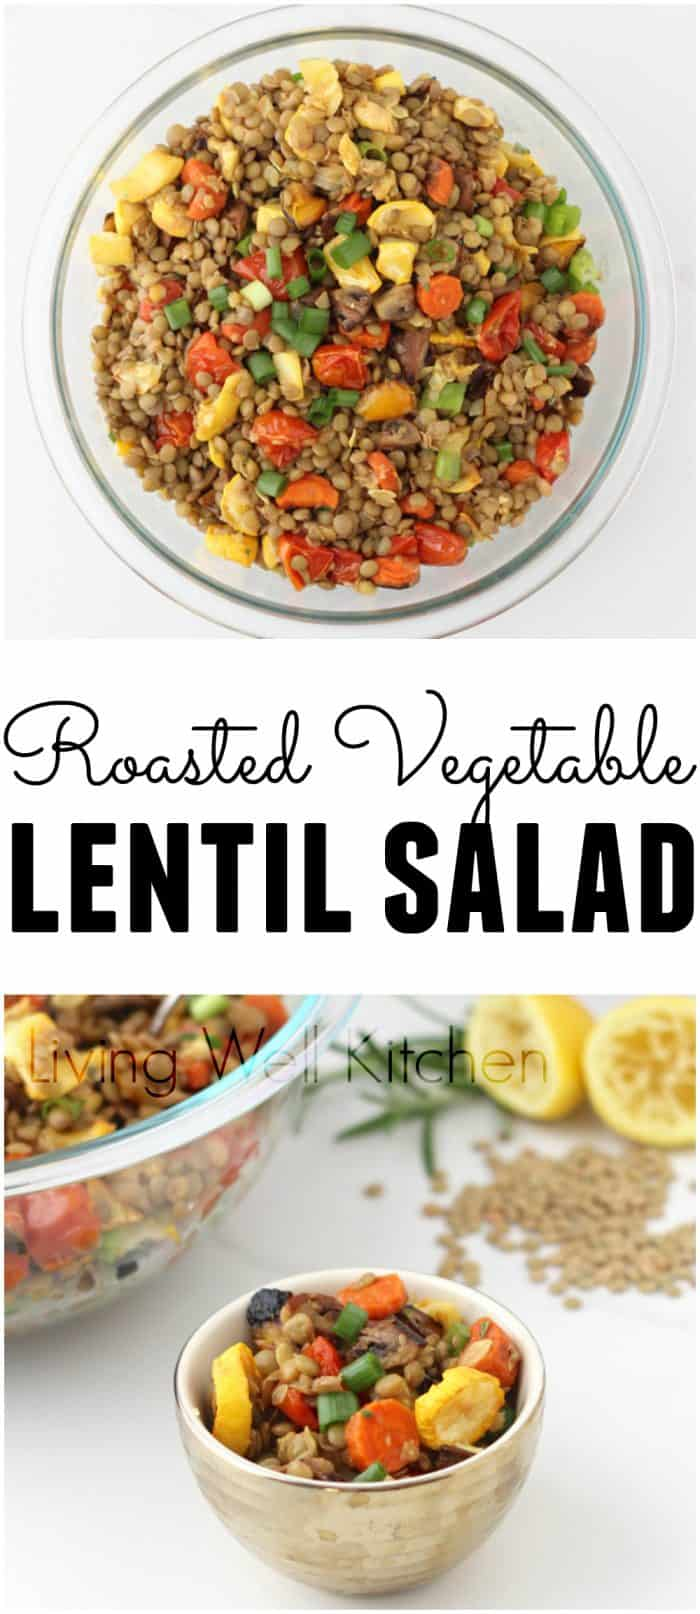 Roasted Vegetable Lentil Salad is a versatile, veggie-packed, budget-friendly, and vegan dish that doubles as a side or a main dish.